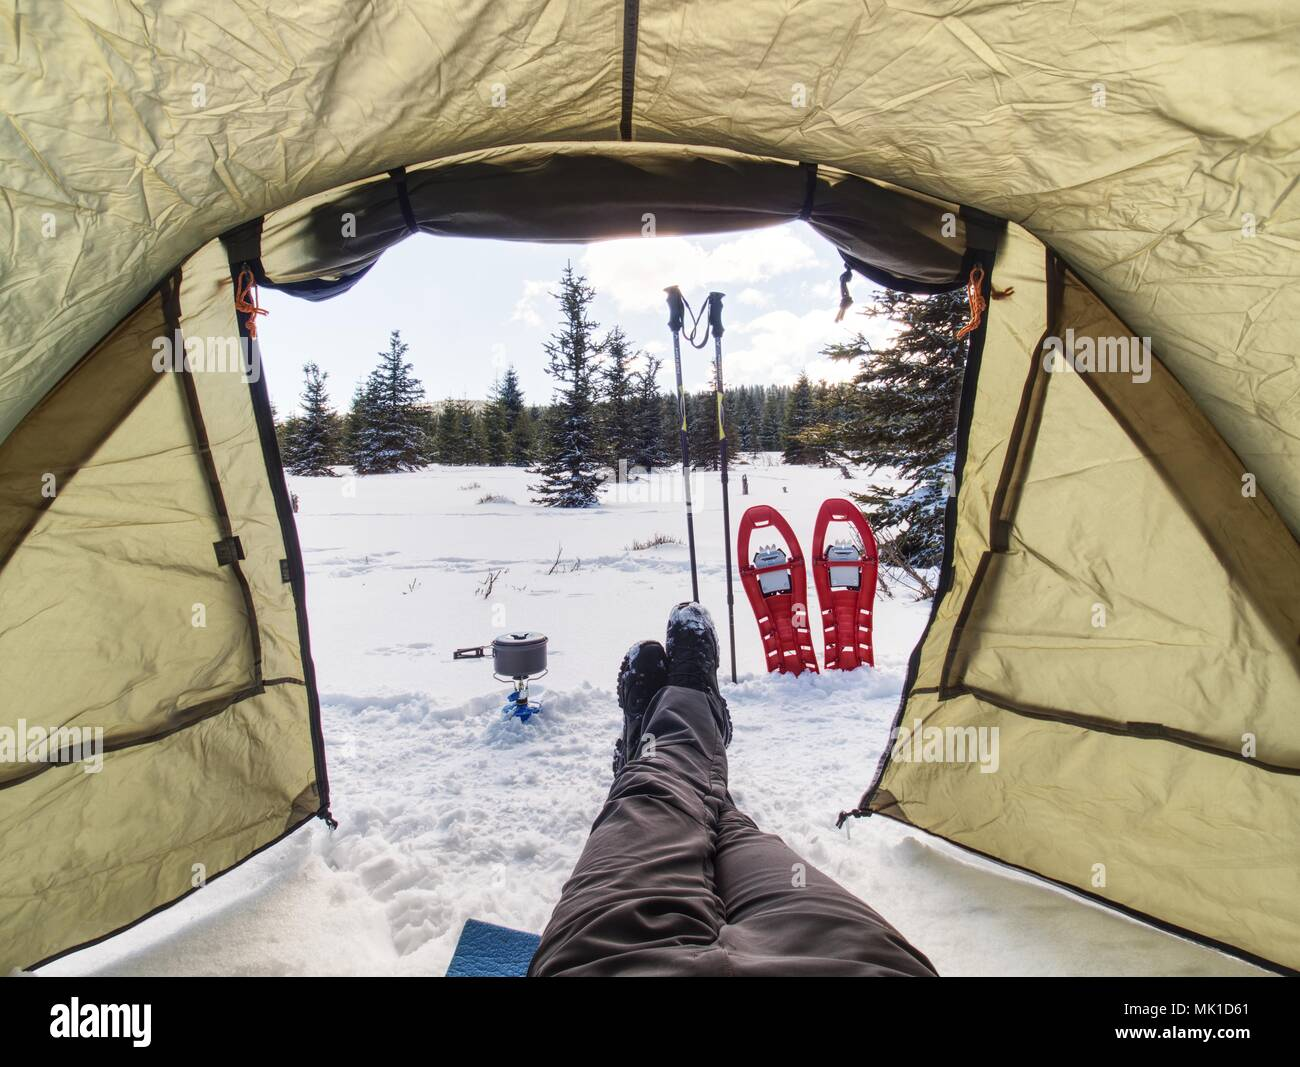 hindu single men in snow camp Wicker, who recently turned 70, is a former major league player, and is one of four men with area snow camp man keeps ties to community - sports - the times-news - burlington, nc sections.